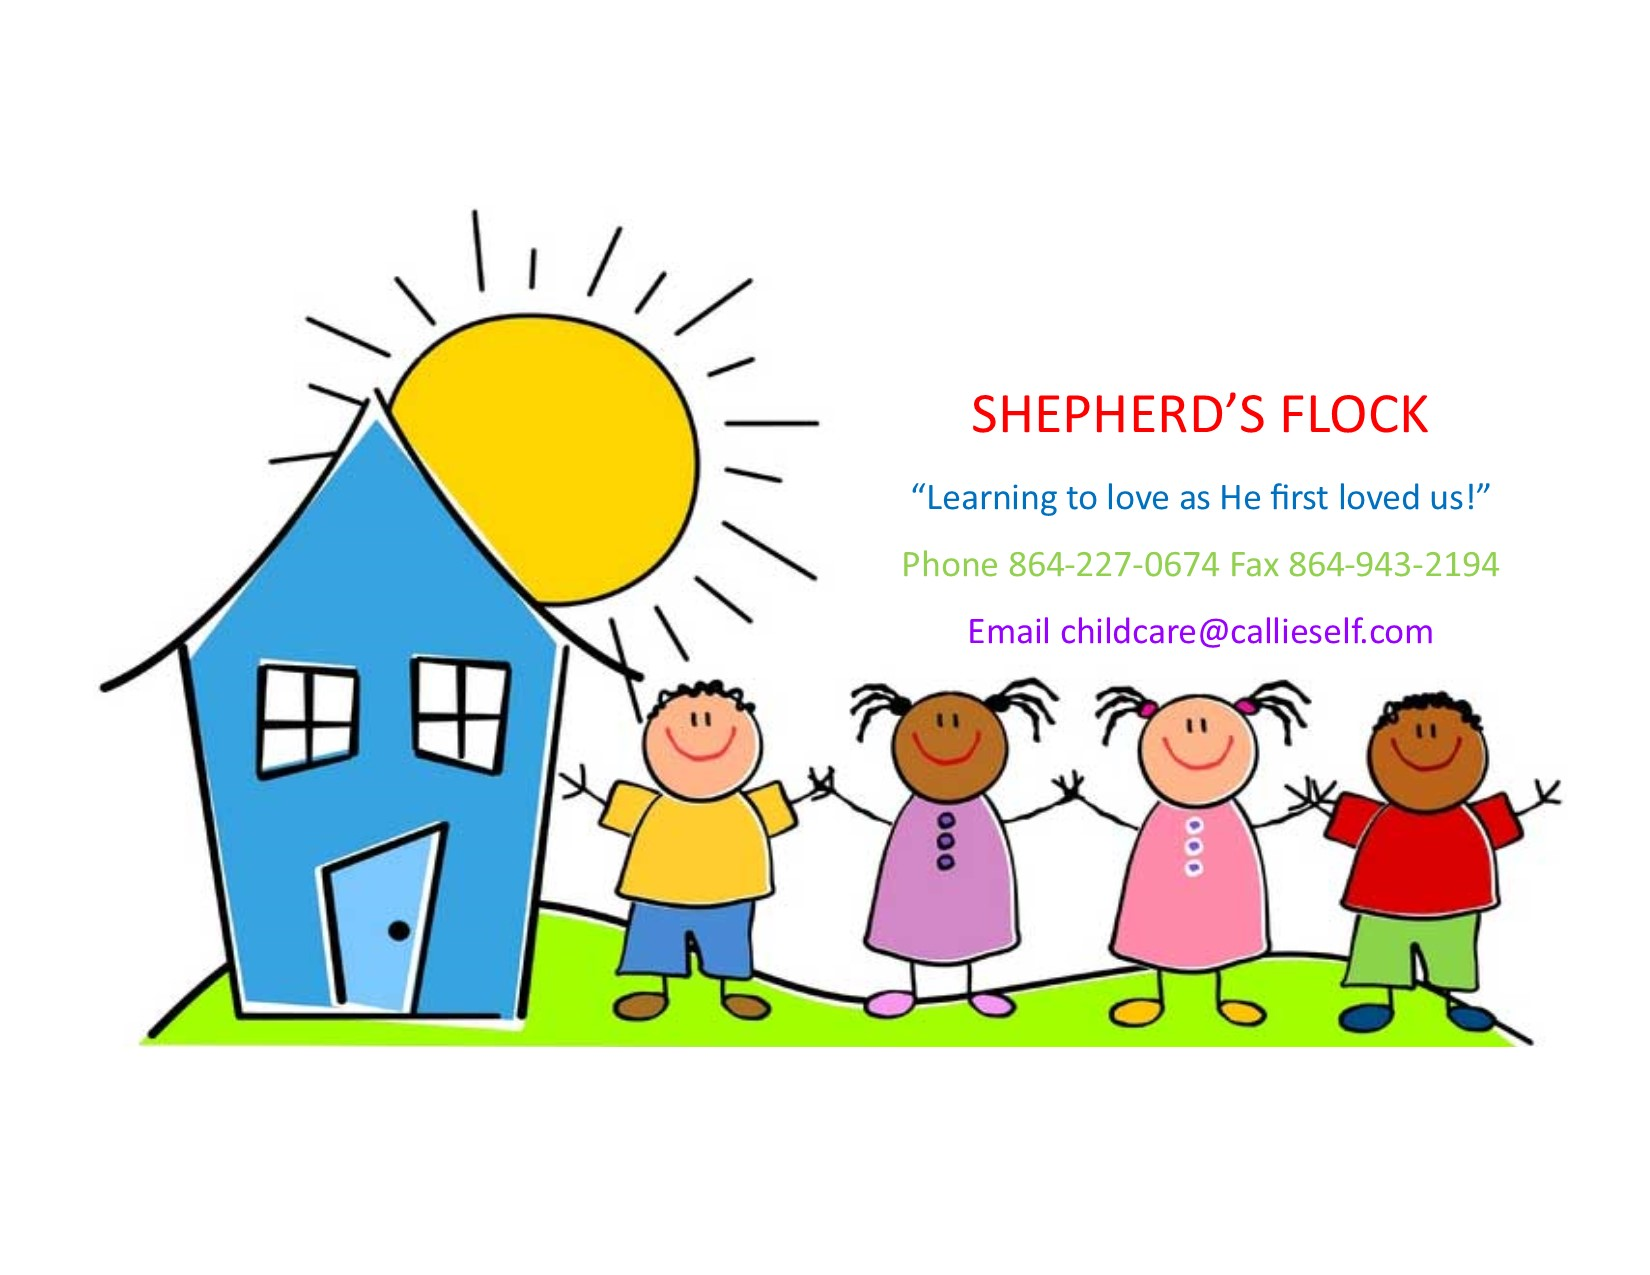 Shepherd's Flock Childcare